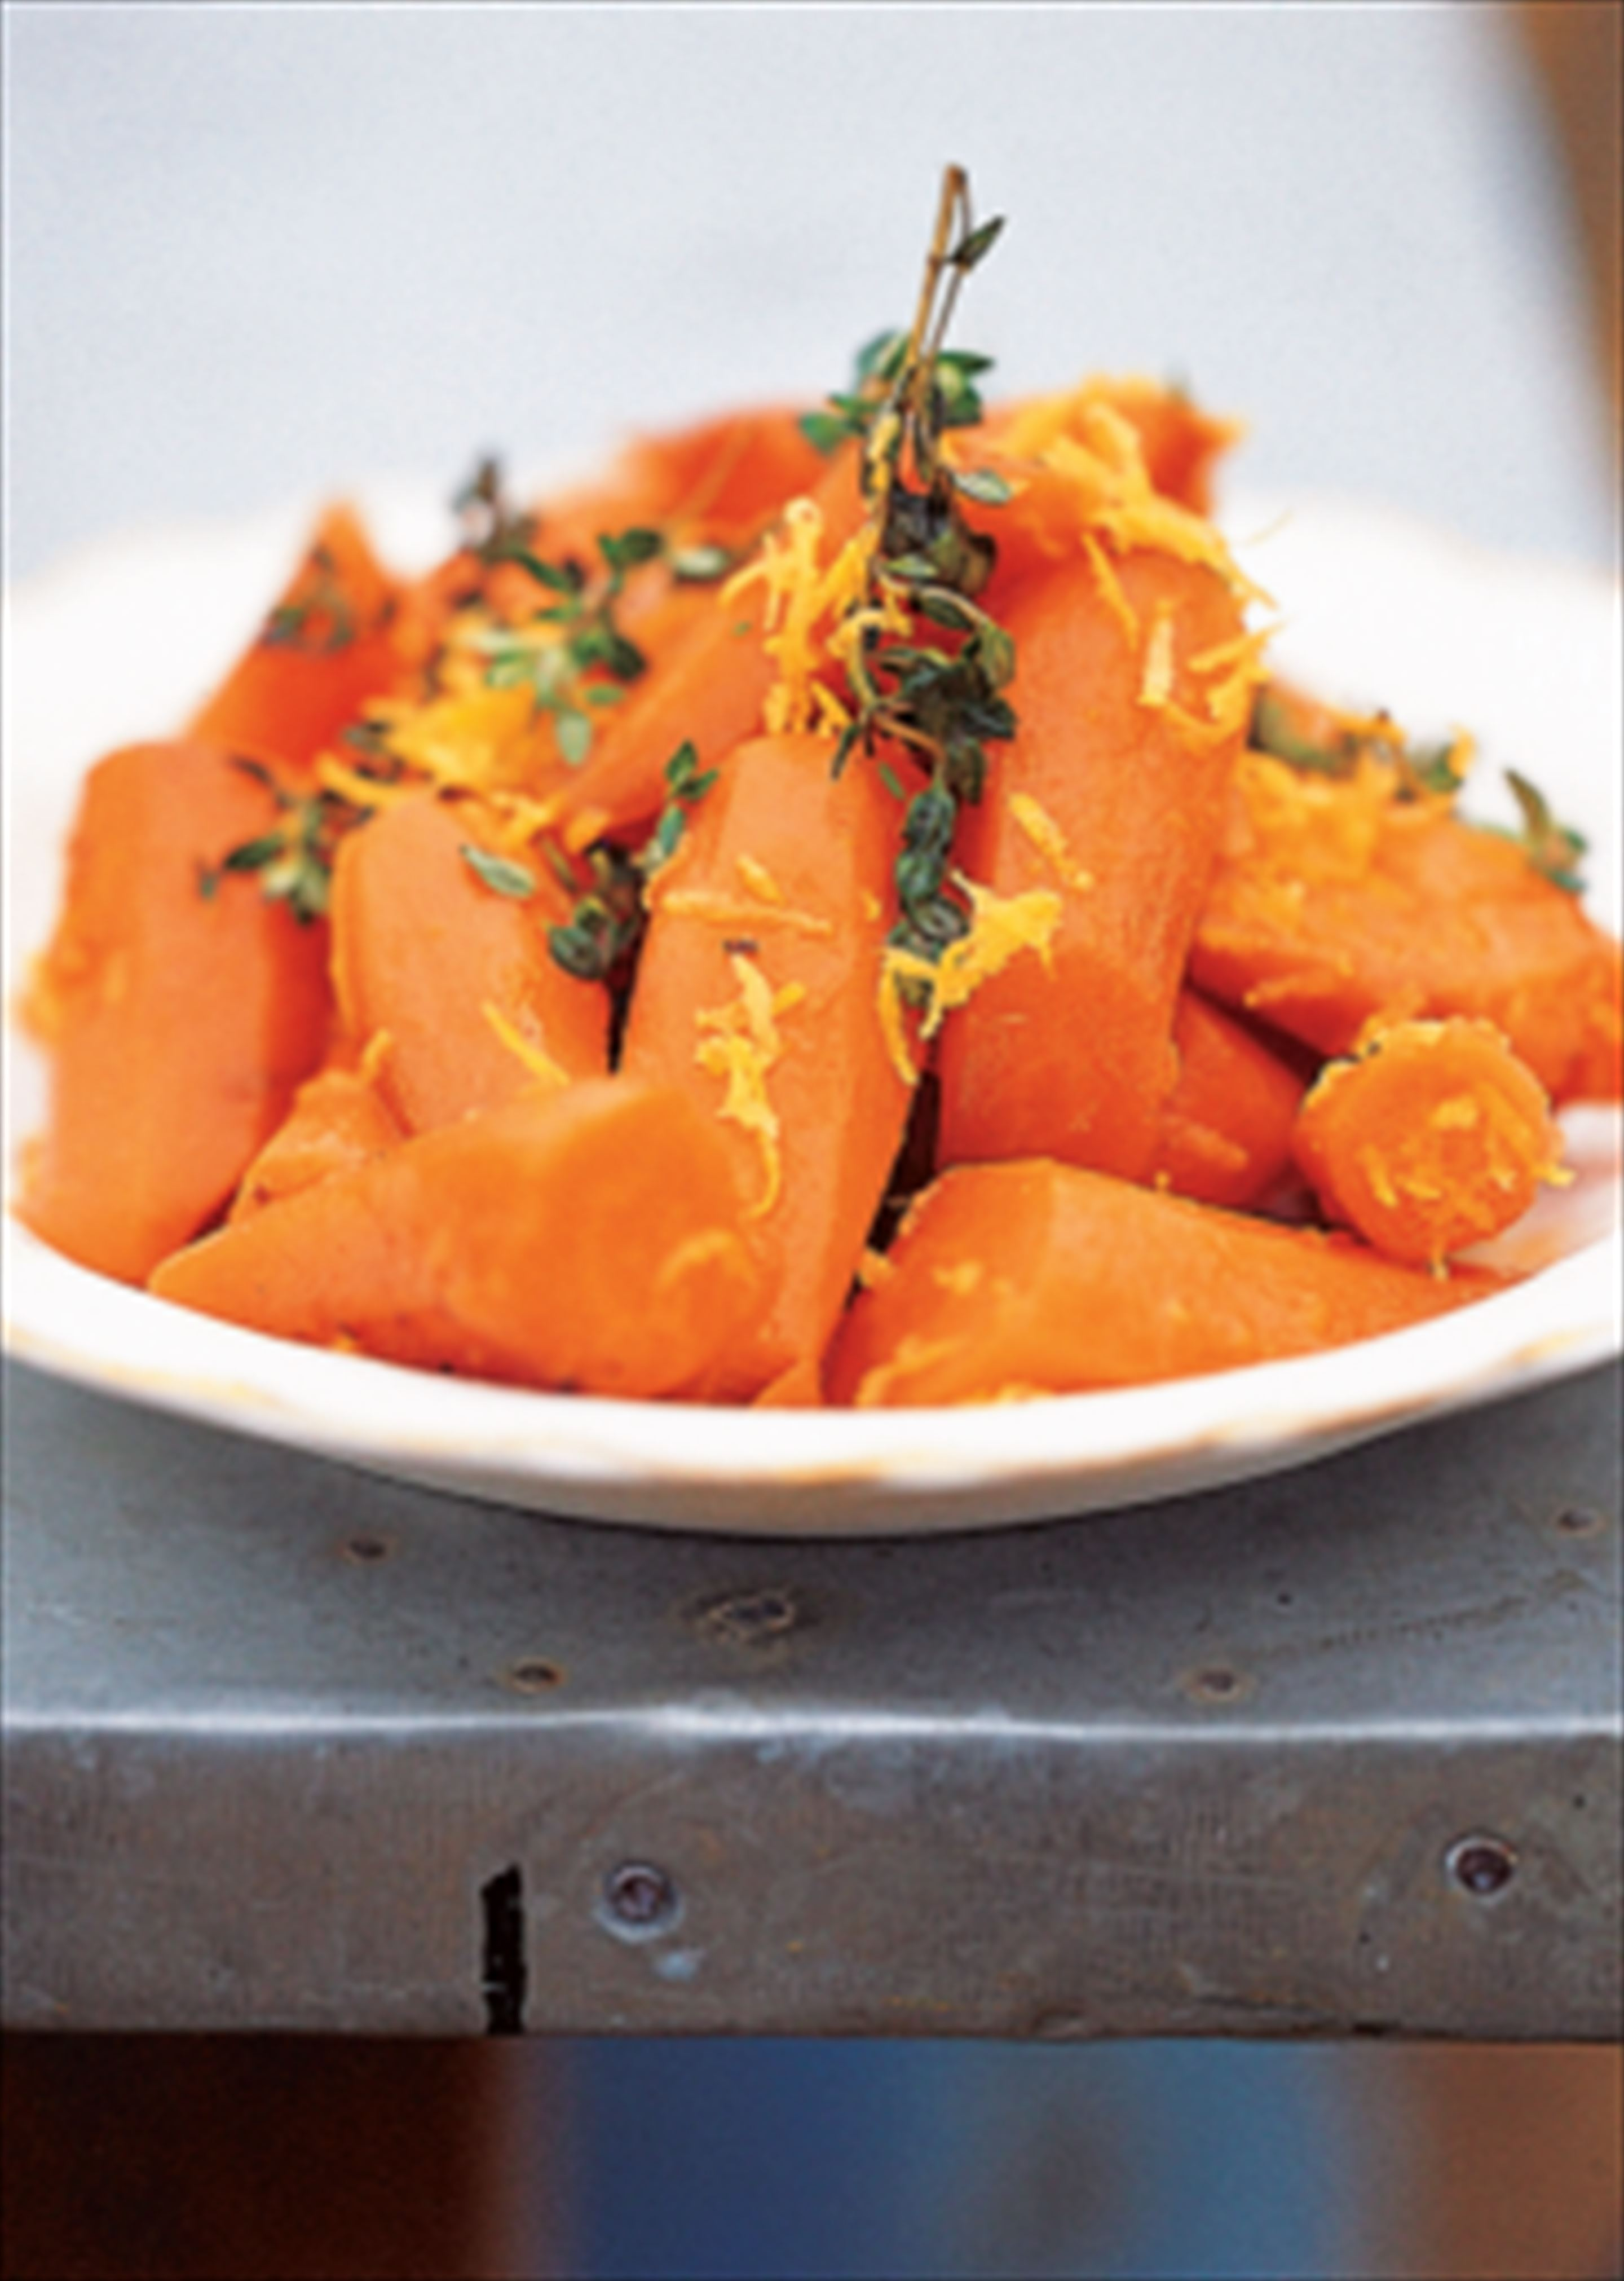 Carrots with honey, lemon zest and thyme